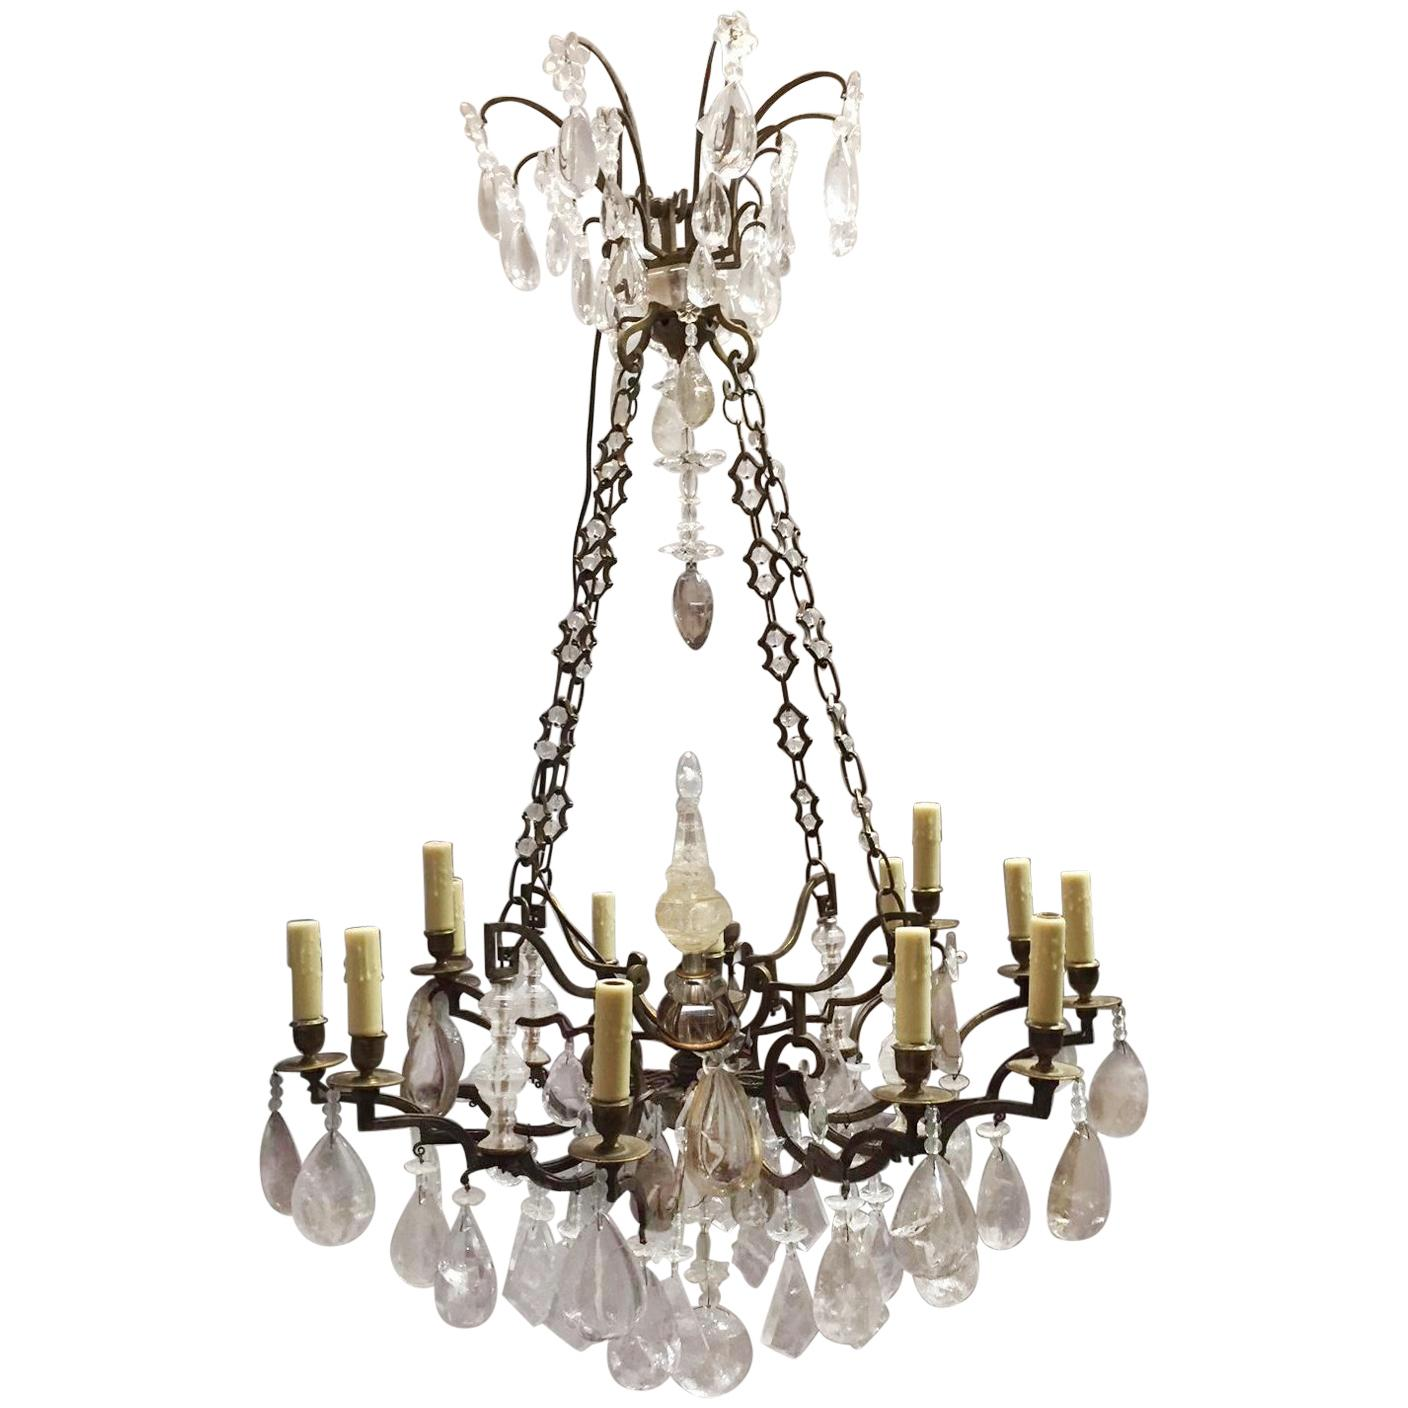 French Rock Crystal and Bronze Chandelier, 19th Century